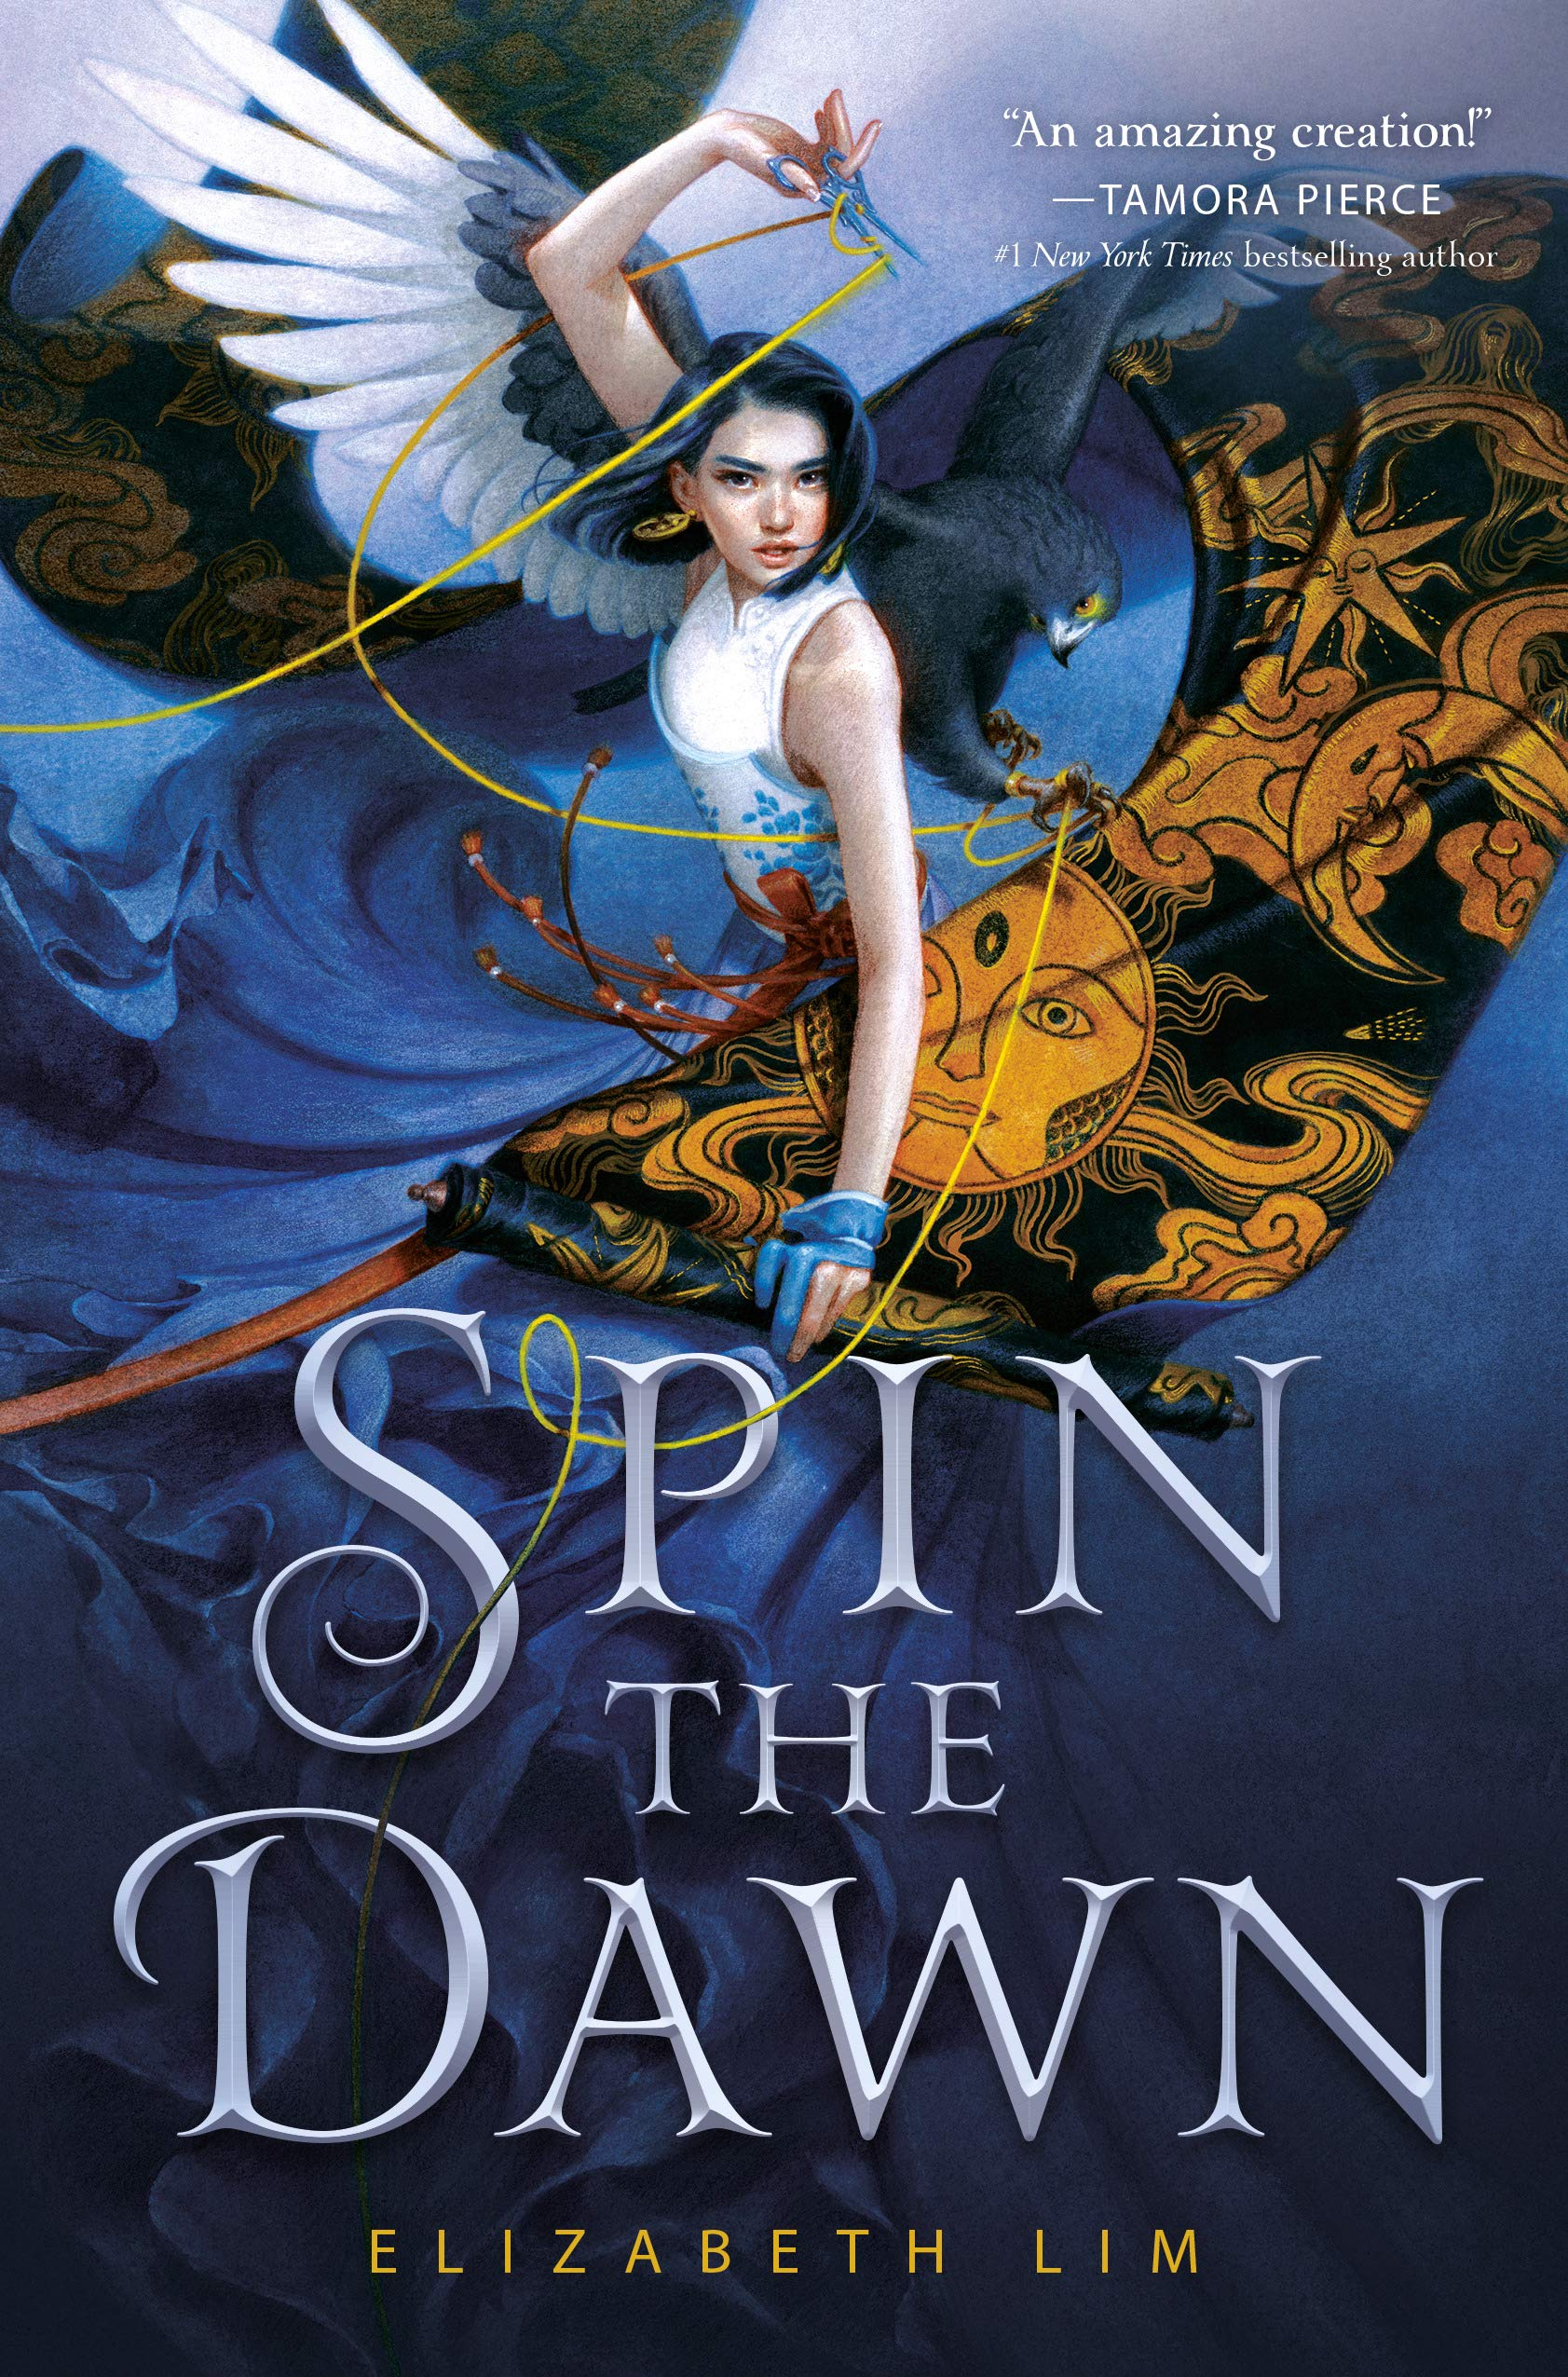 Image result for Spin the Dawn